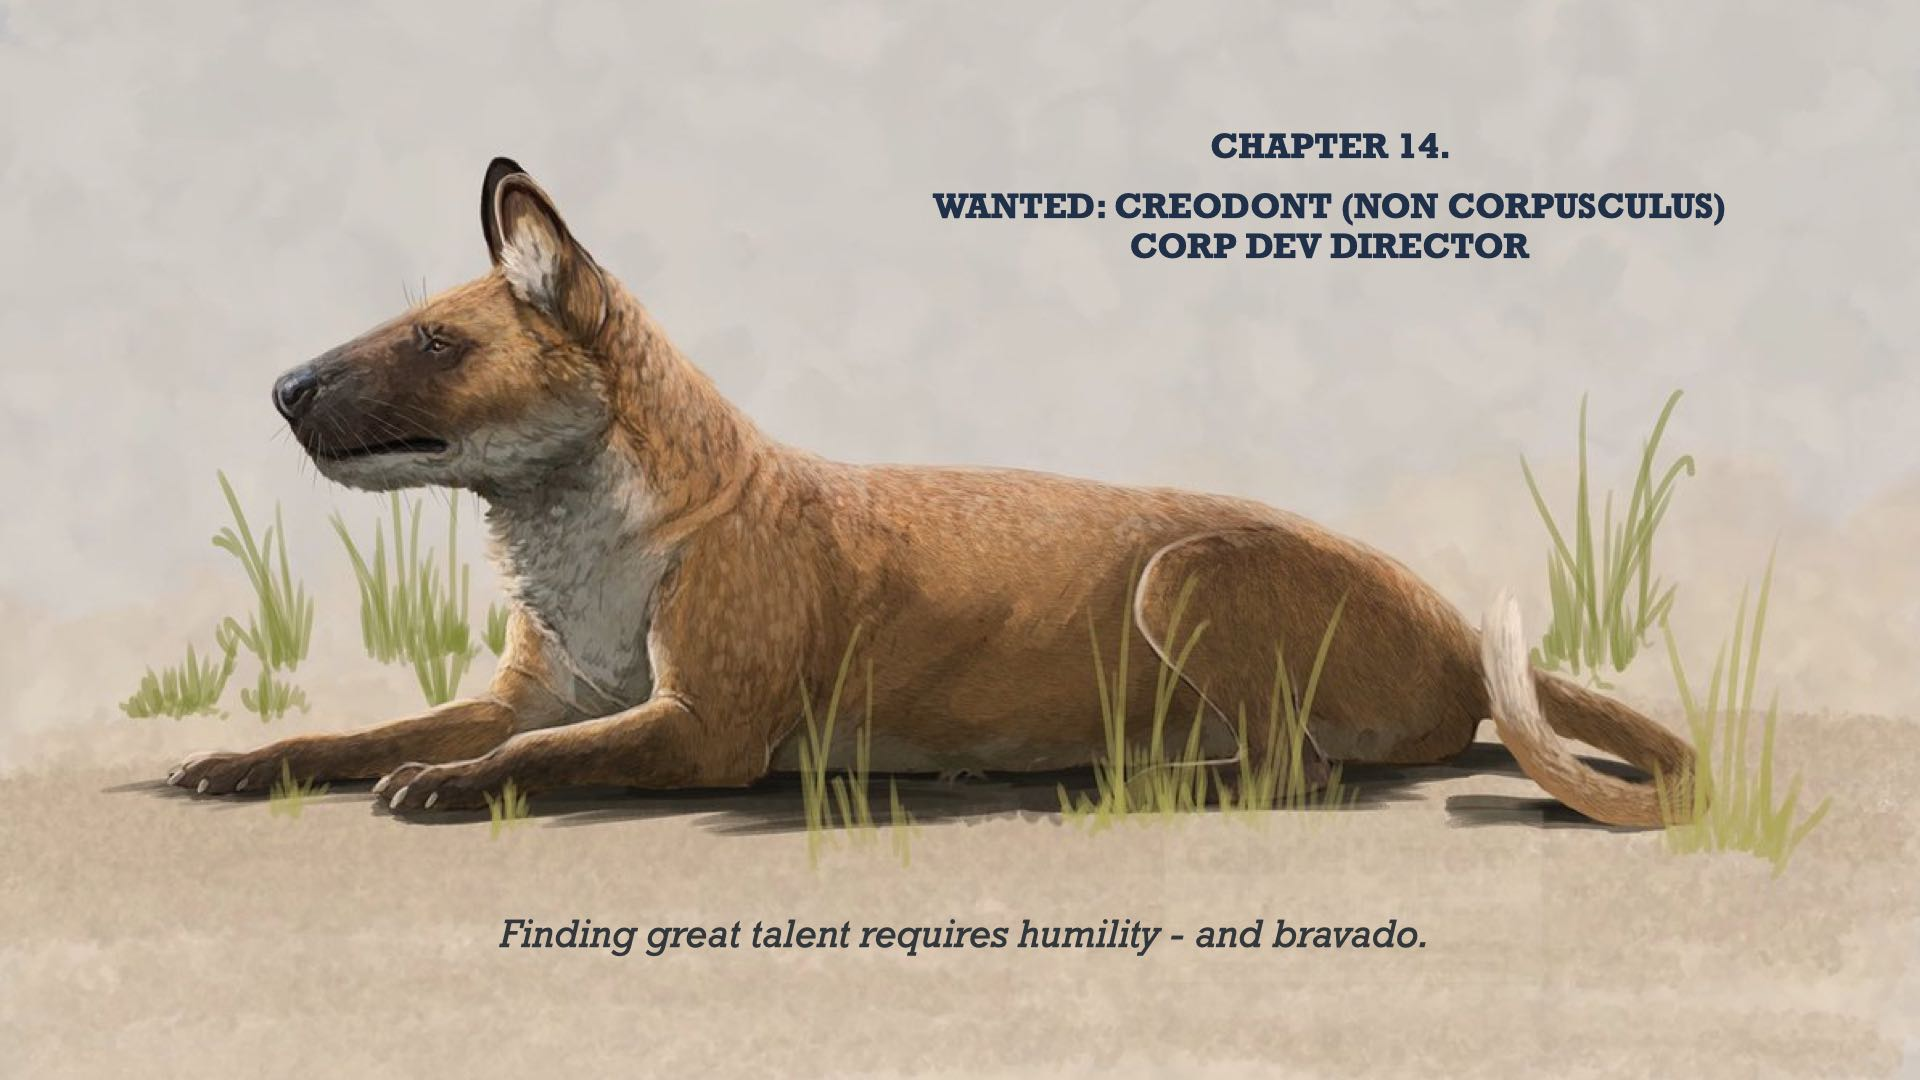 Wanted: Creodont (non Corpusculus) Corp Dev Director